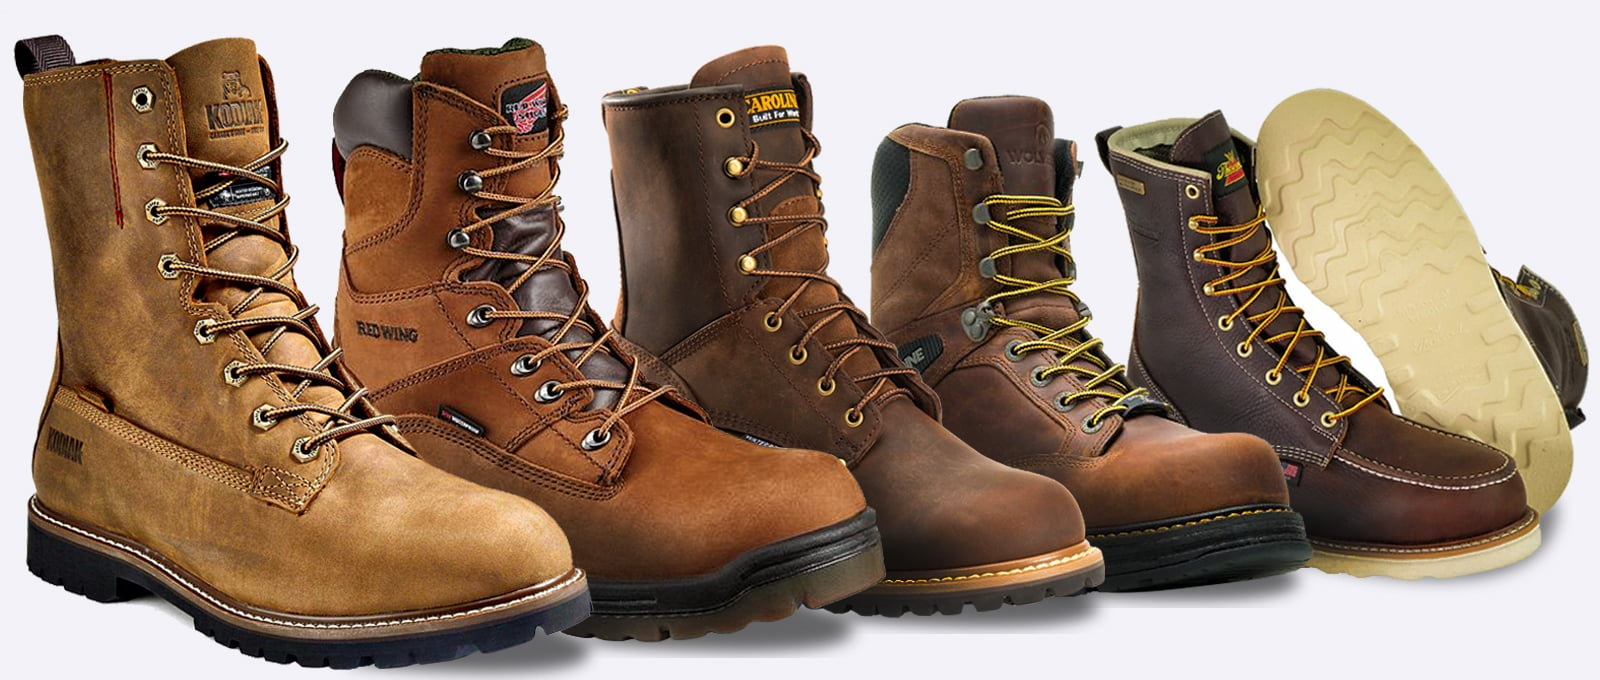 8 inch work boots feature image